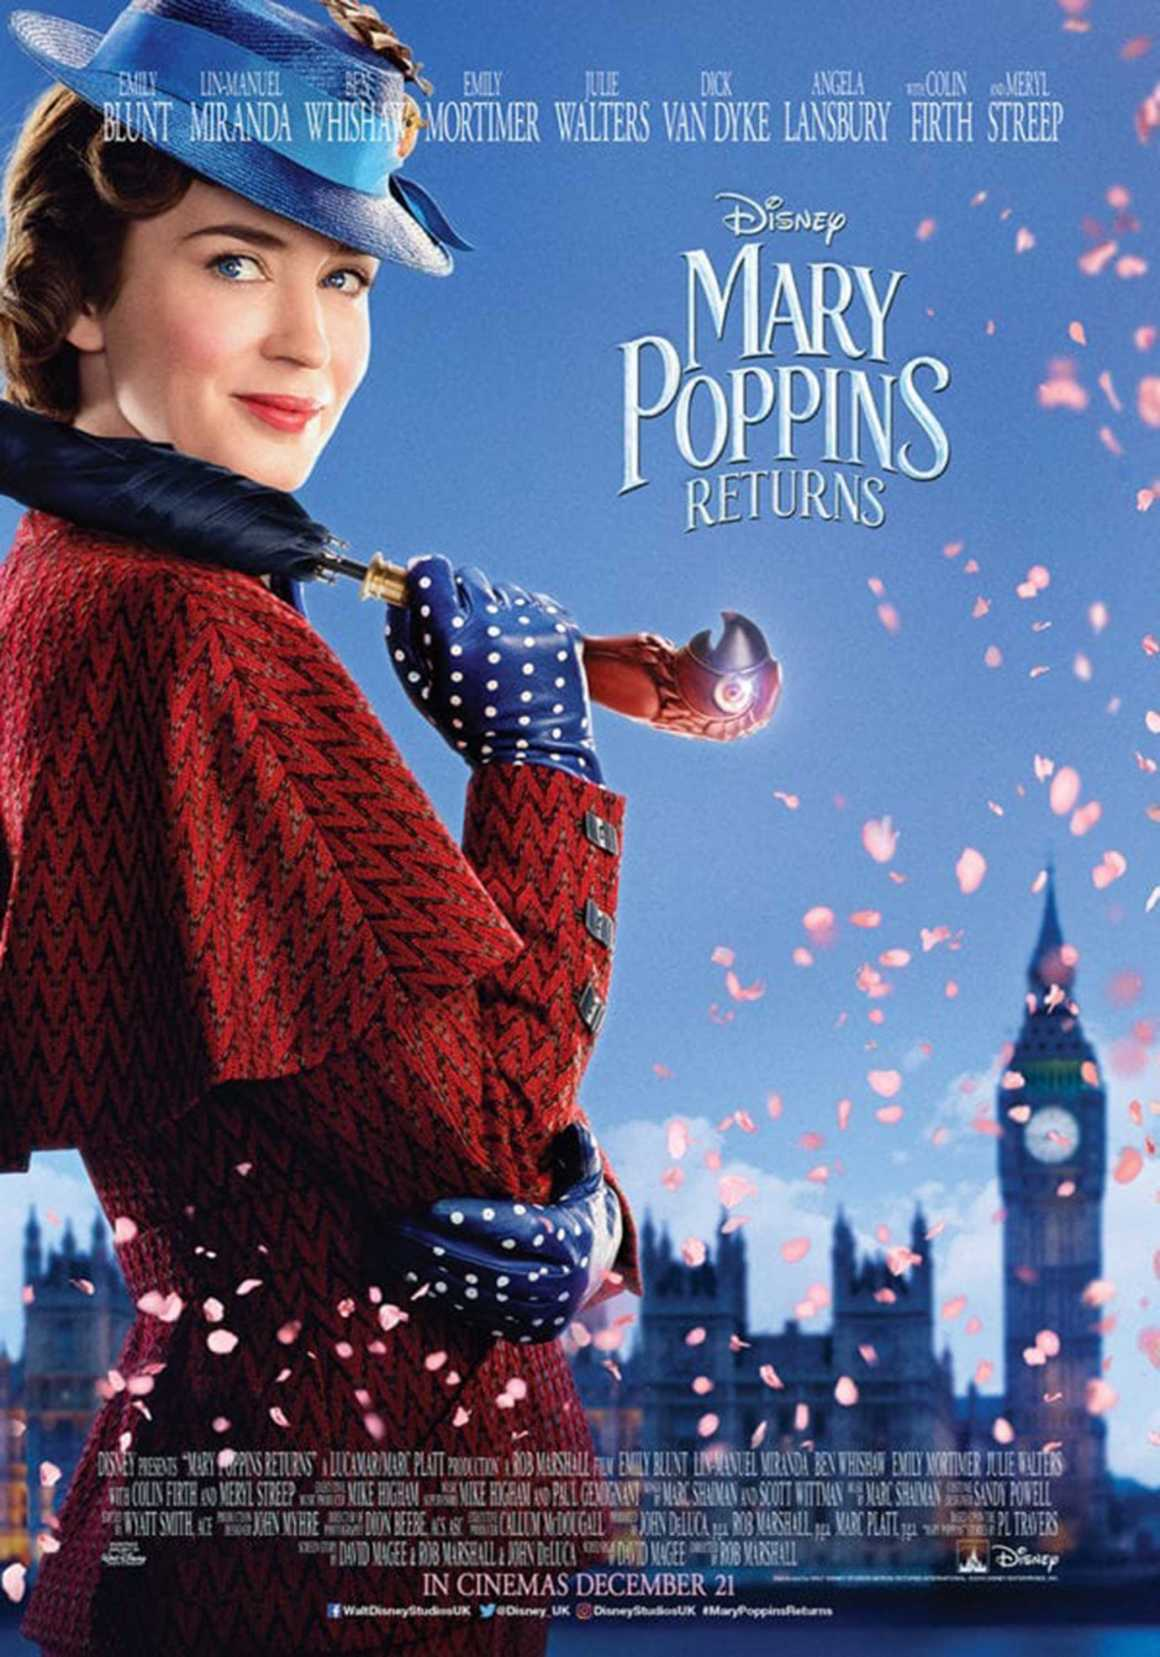 Movie review: 'Mary Poppins Returns,' Emily Blunt is delightful in sweet, nostalgic sequel